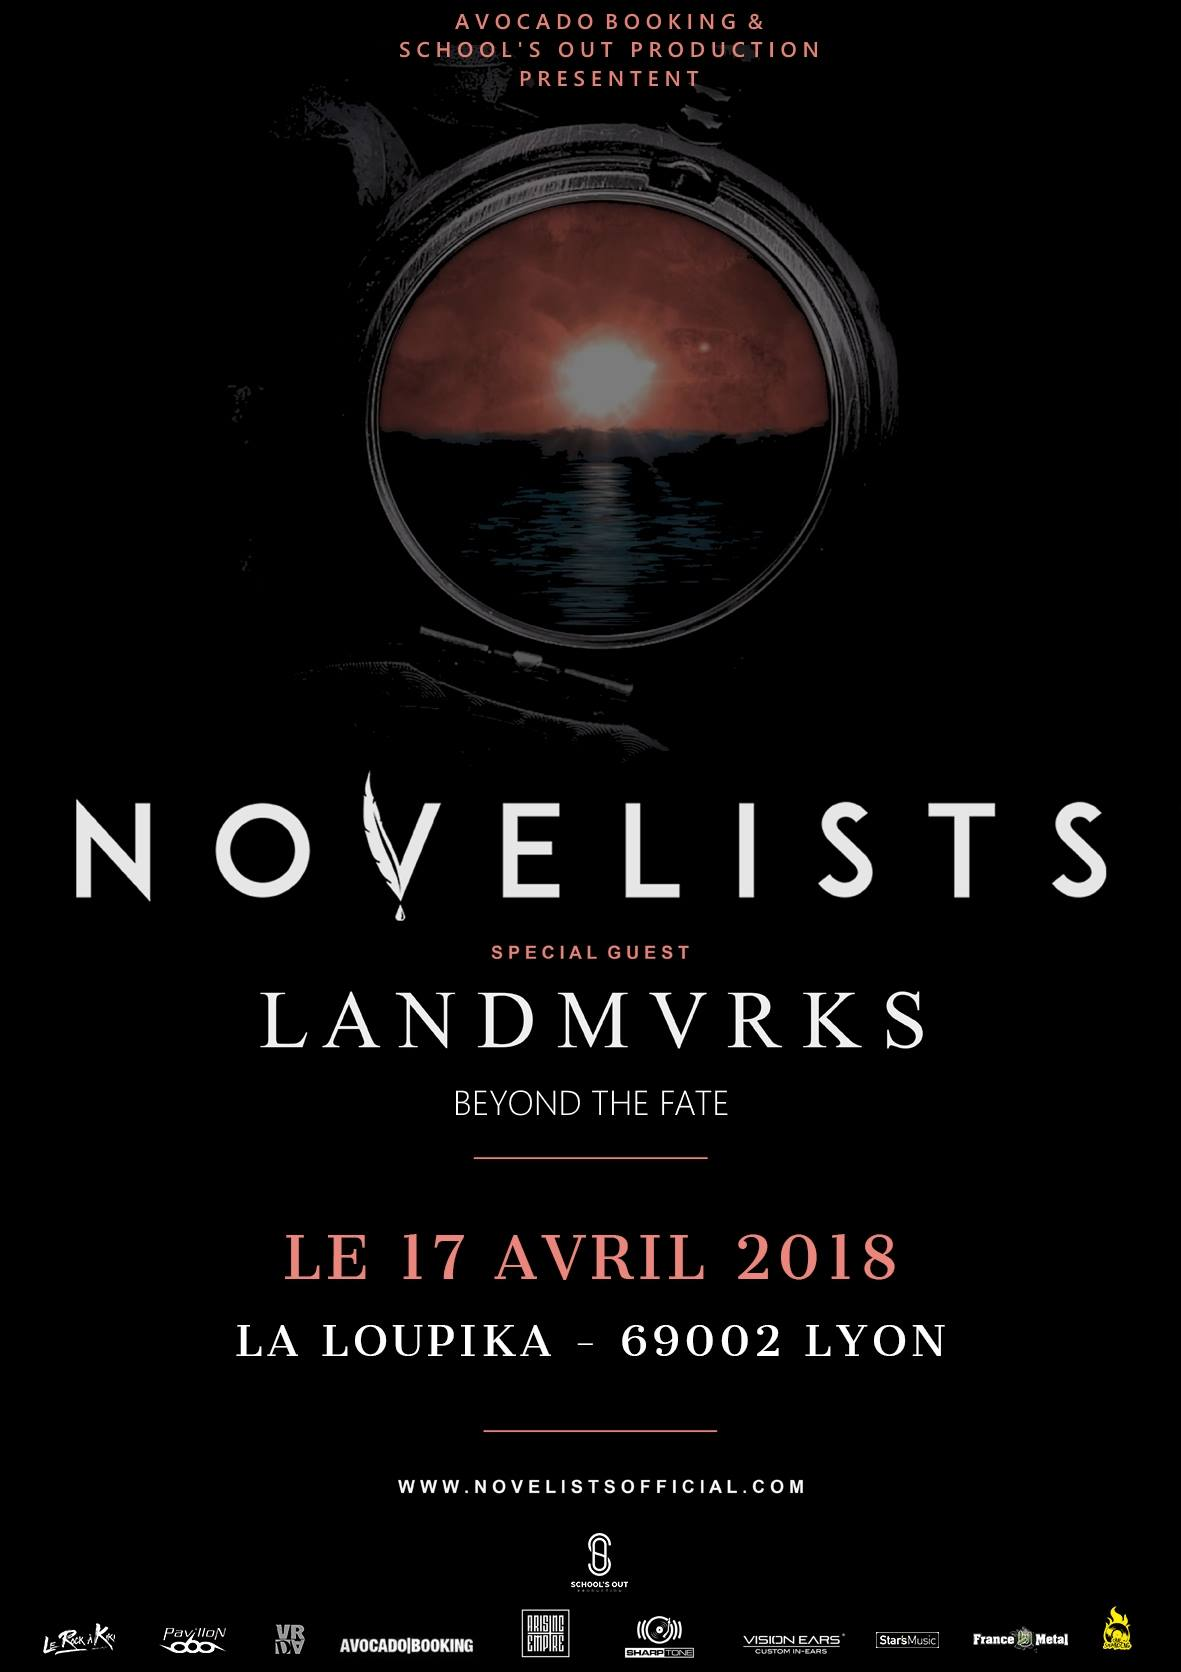 novelists landmvrks beyond the fate Peniche Loupika school's out production lyon one standing live report